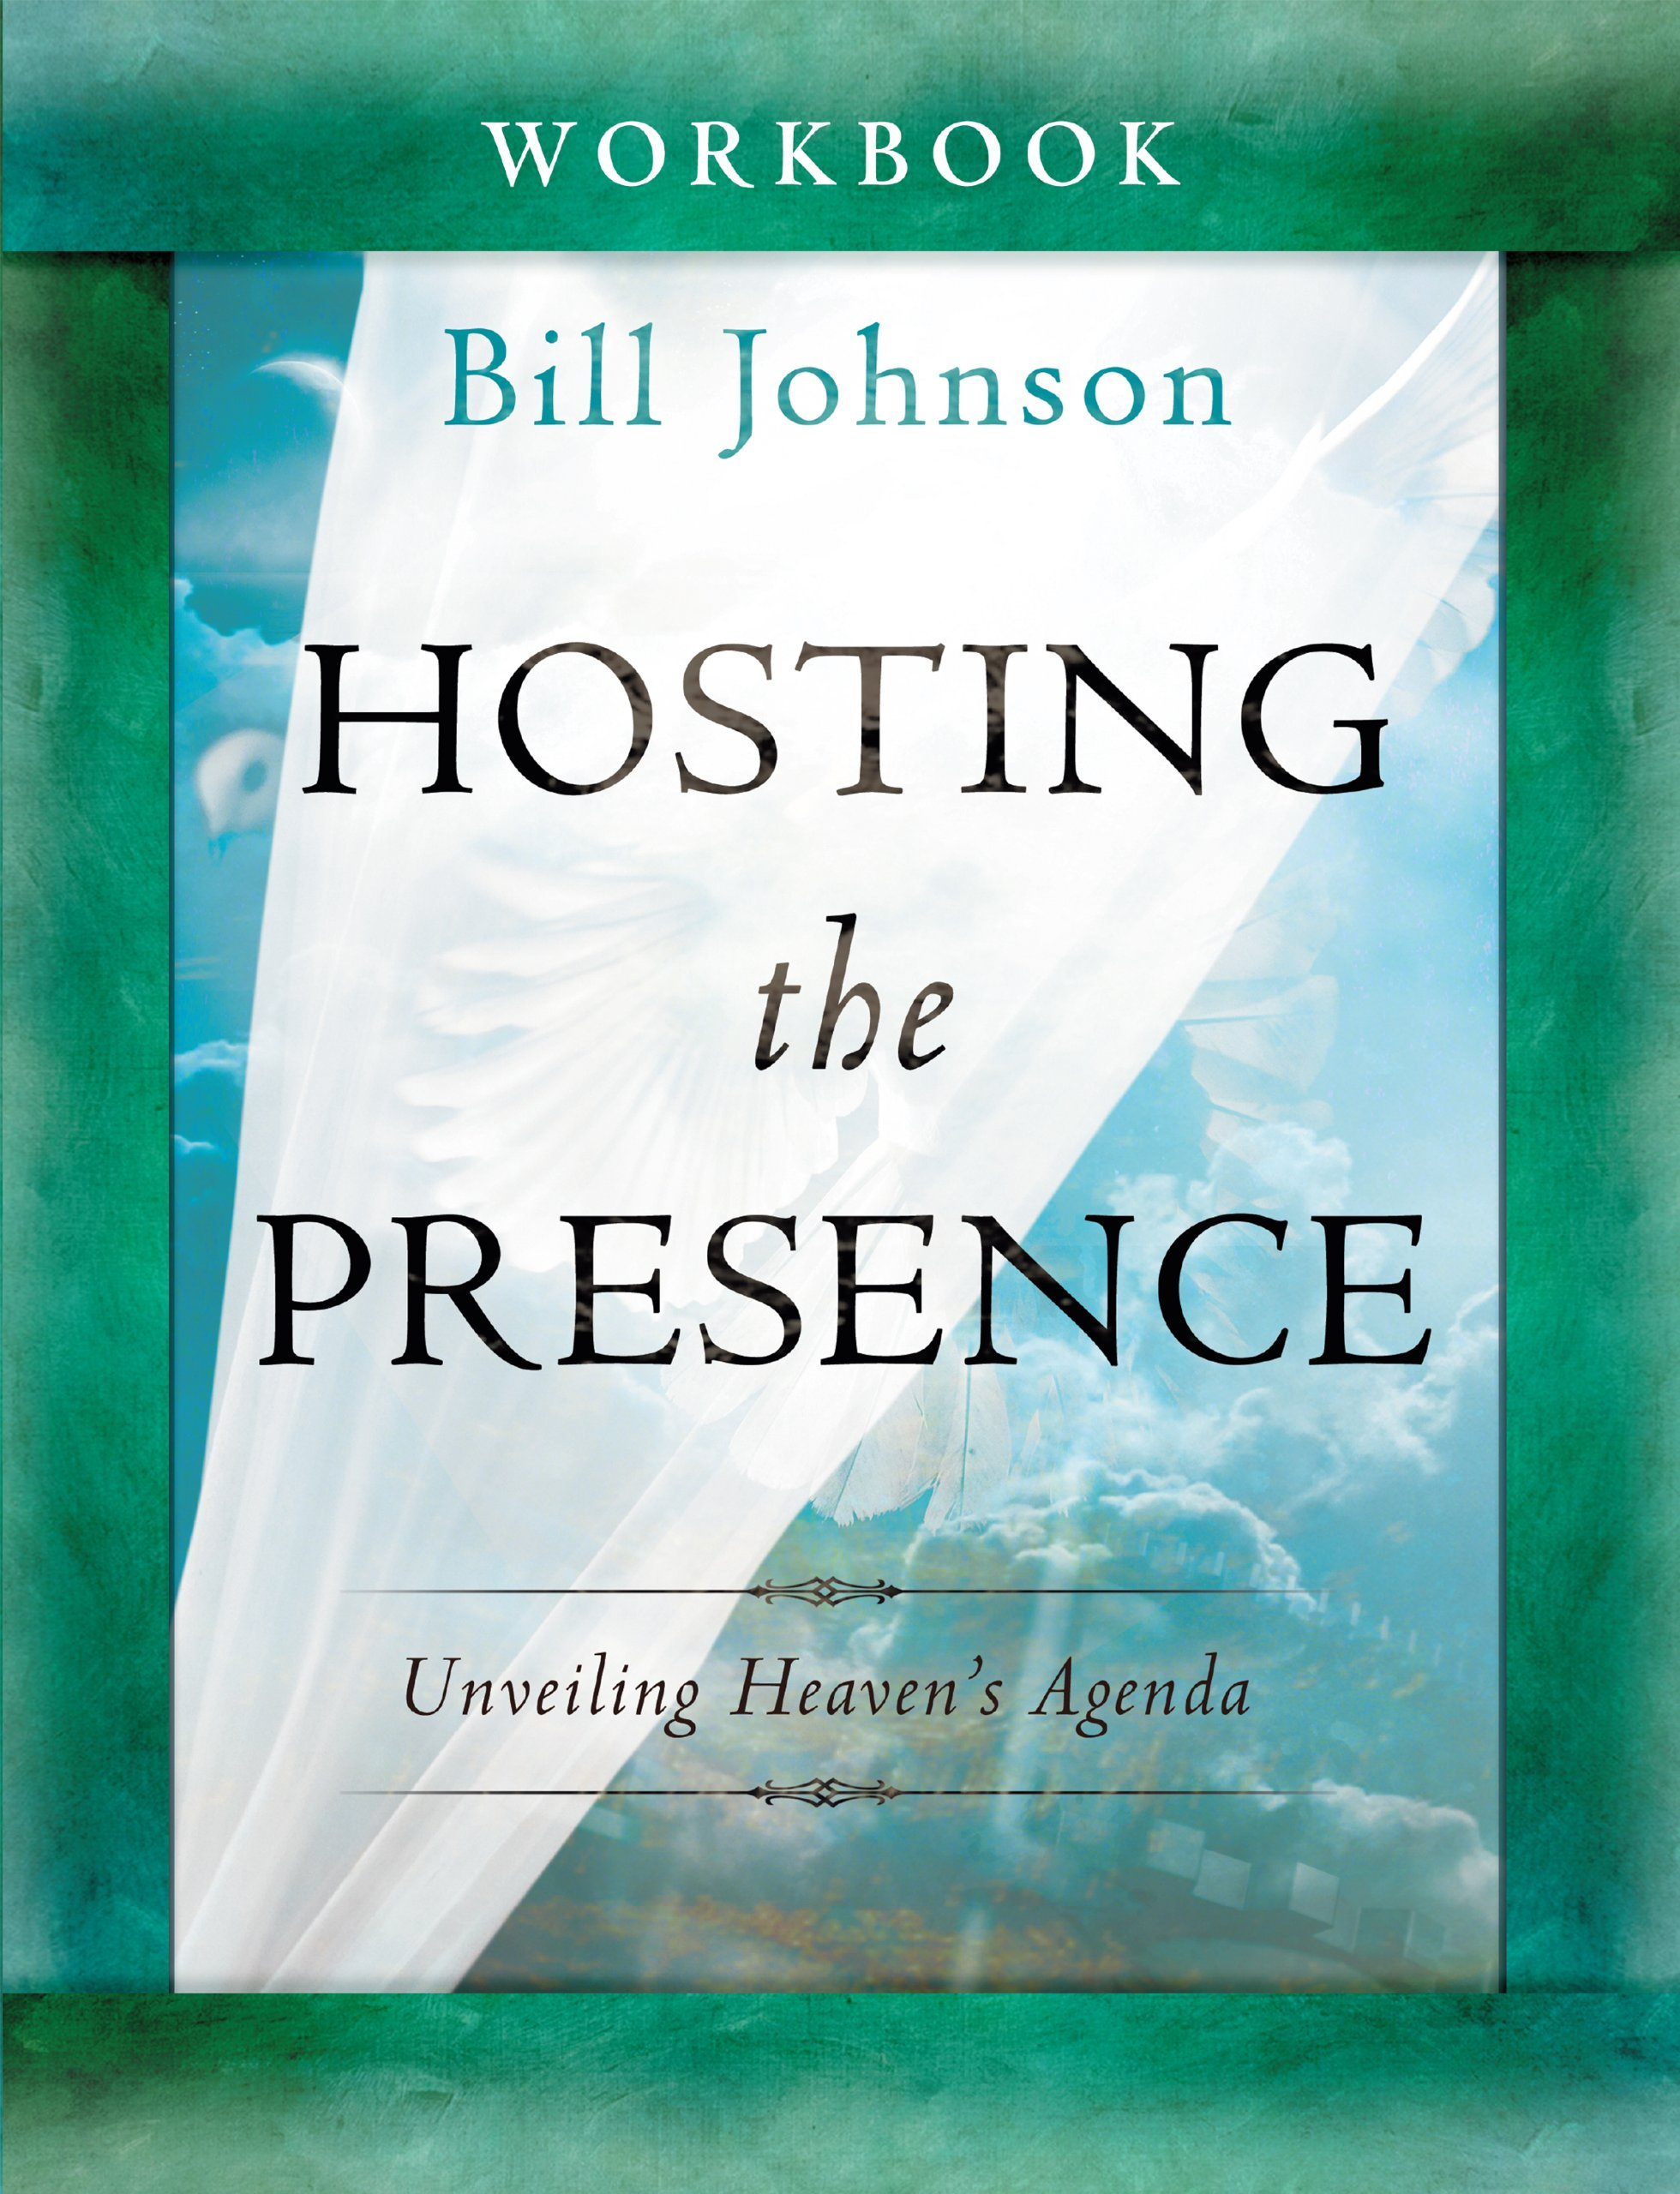 Hosting the Presence Workbook: Unveiling Heaven's Agenda by Bill Johnson  (17-Sep-2013) Paperback: Amazon.com: Books